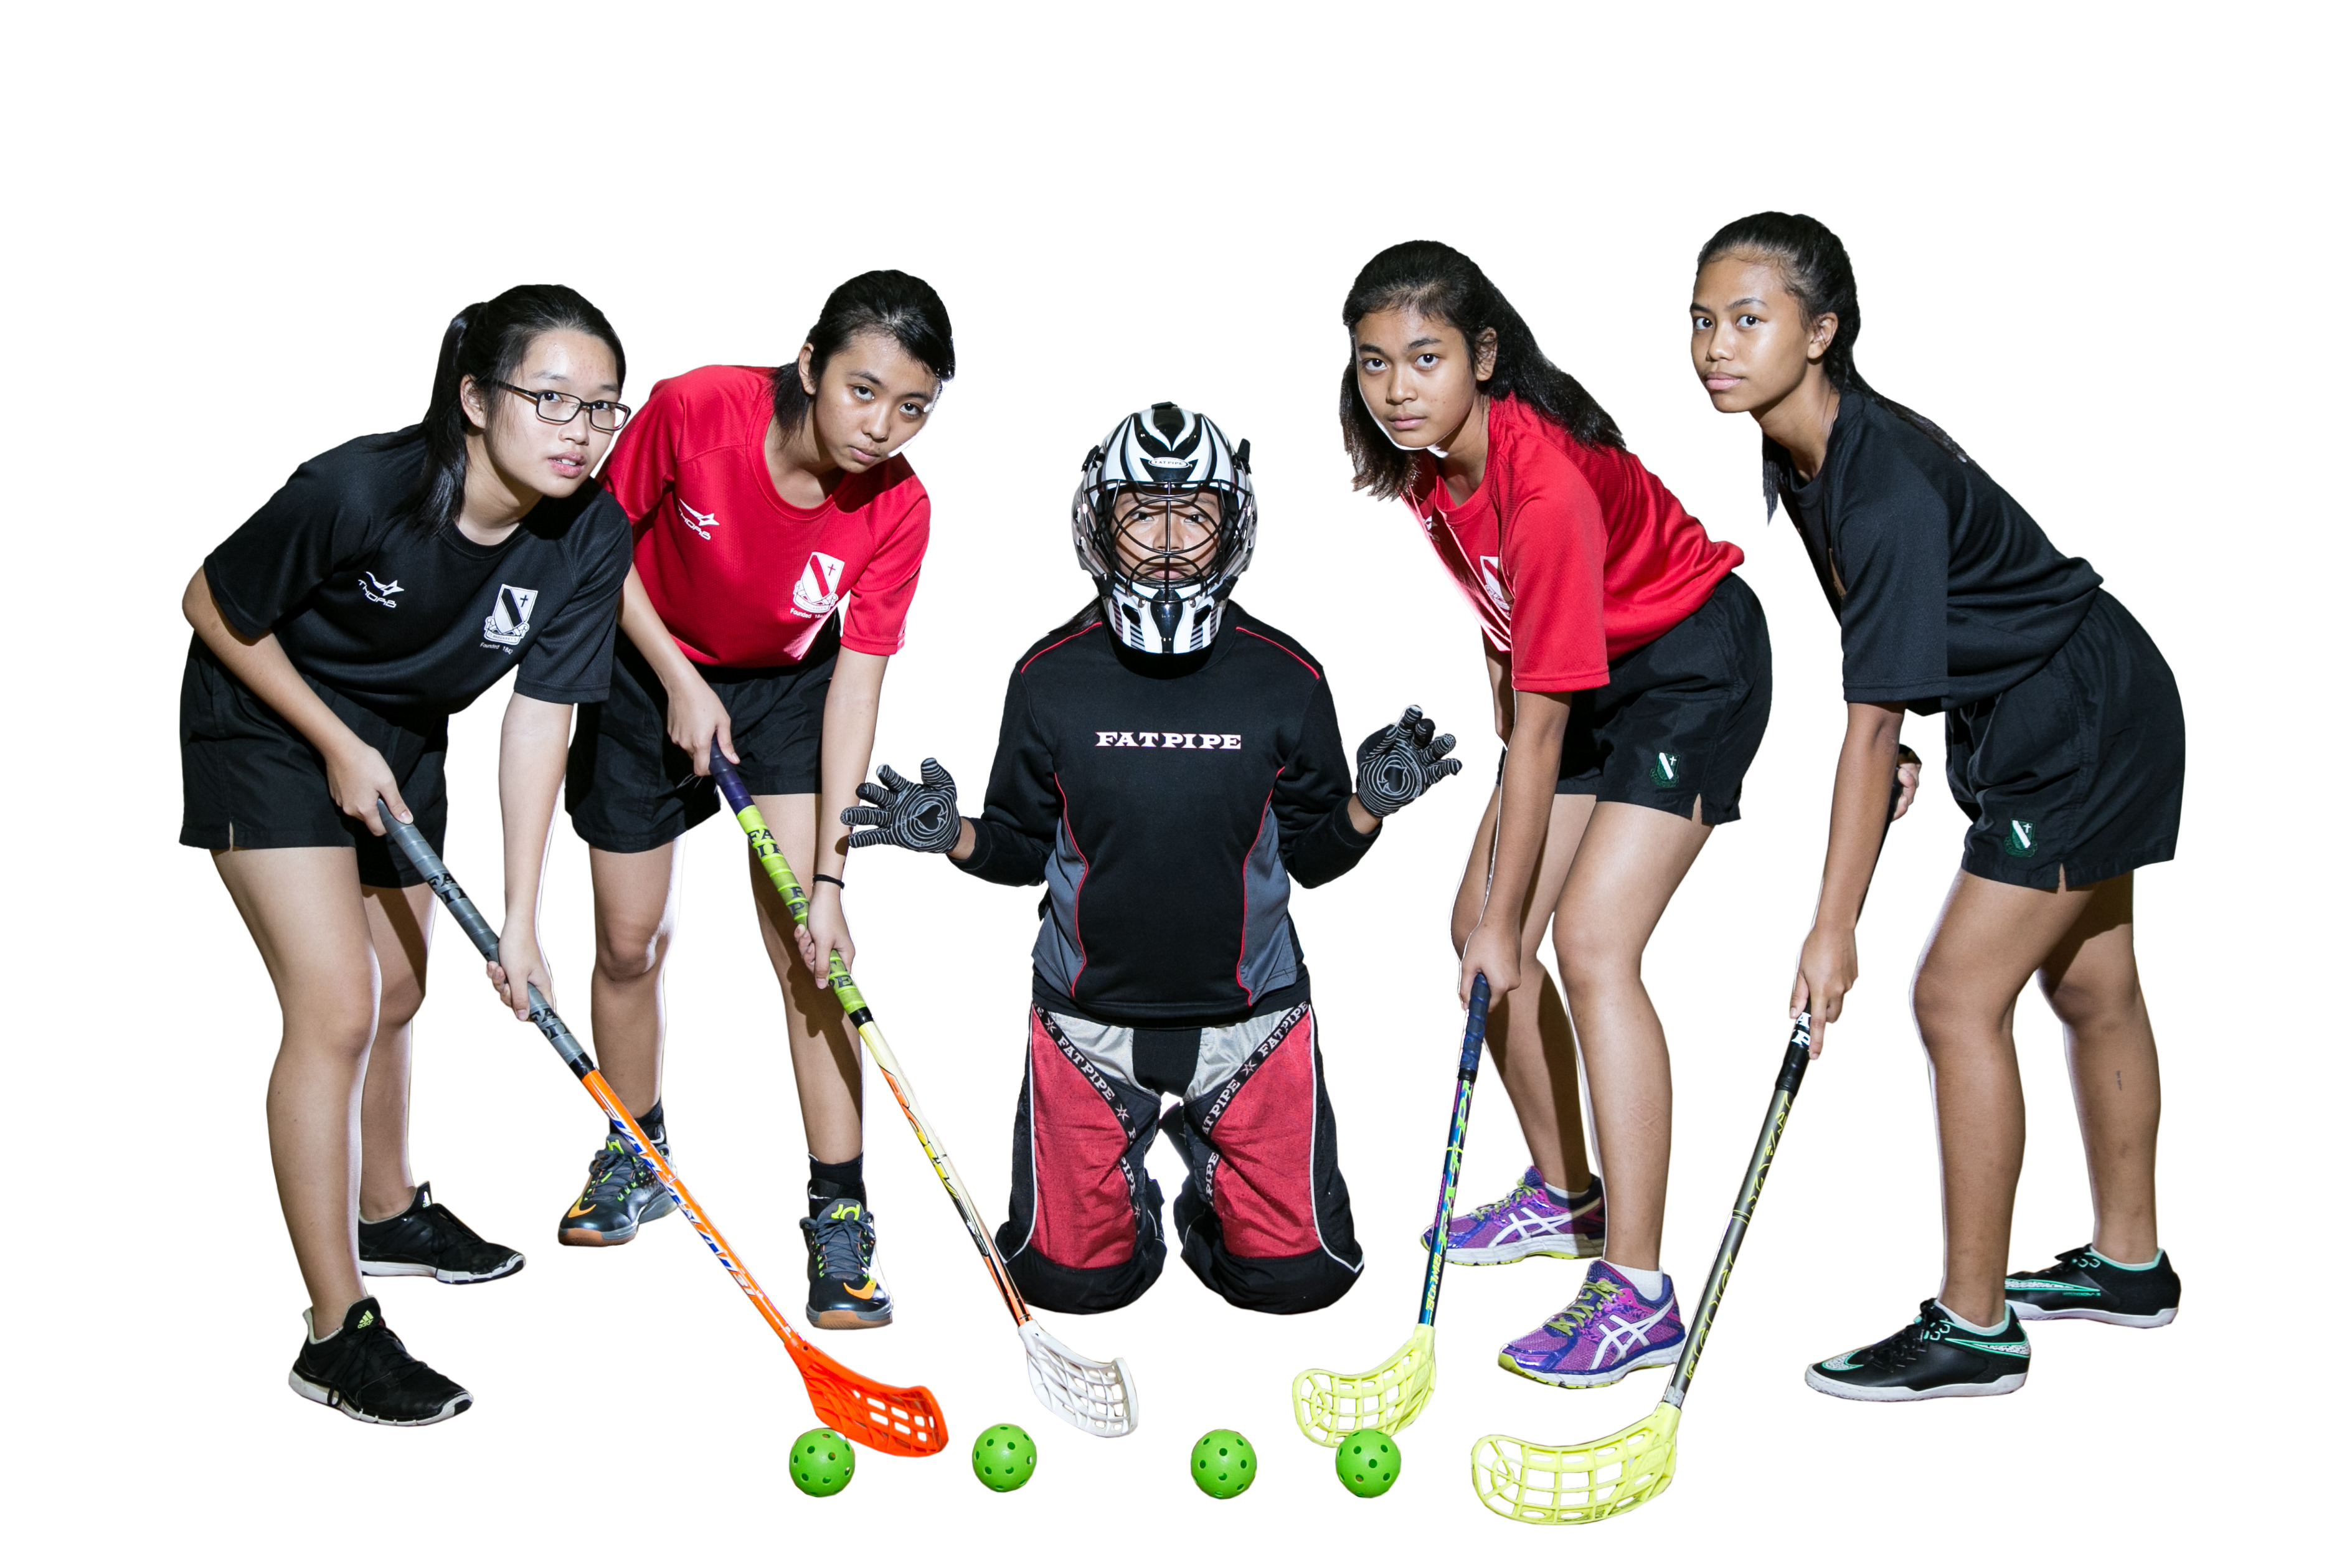 Floorball1-iloveimg-converted.jpg